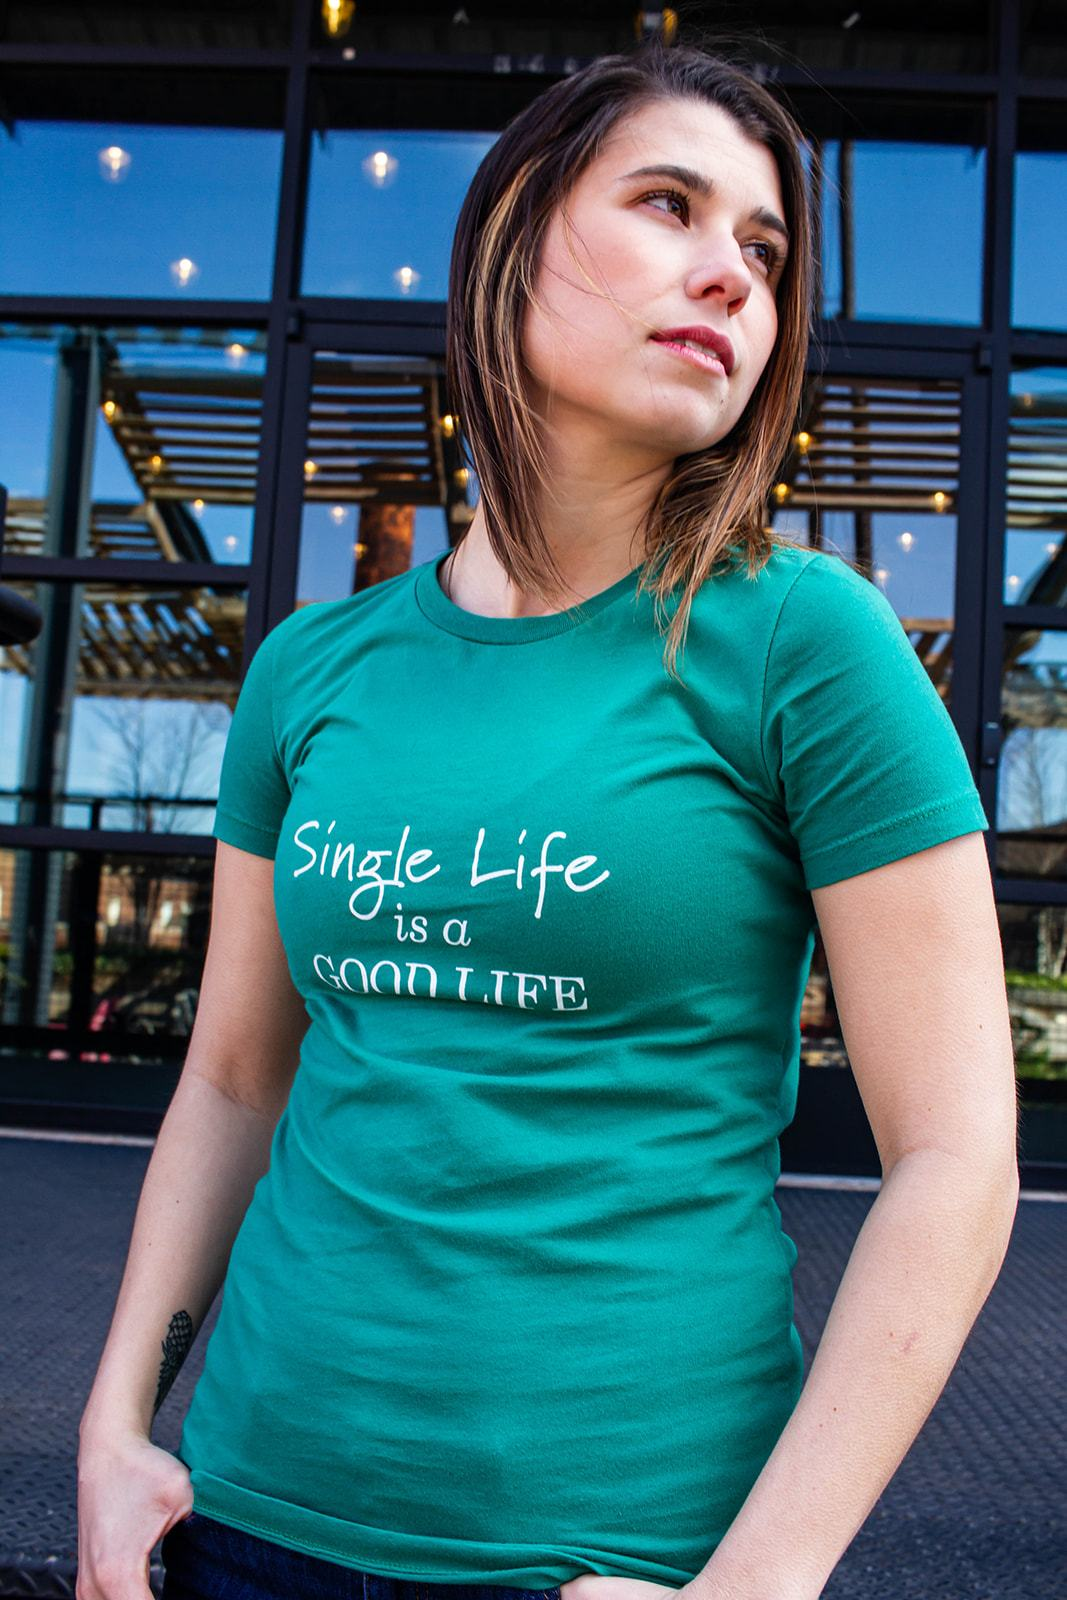 Single Life is a Good Life Women's Tee